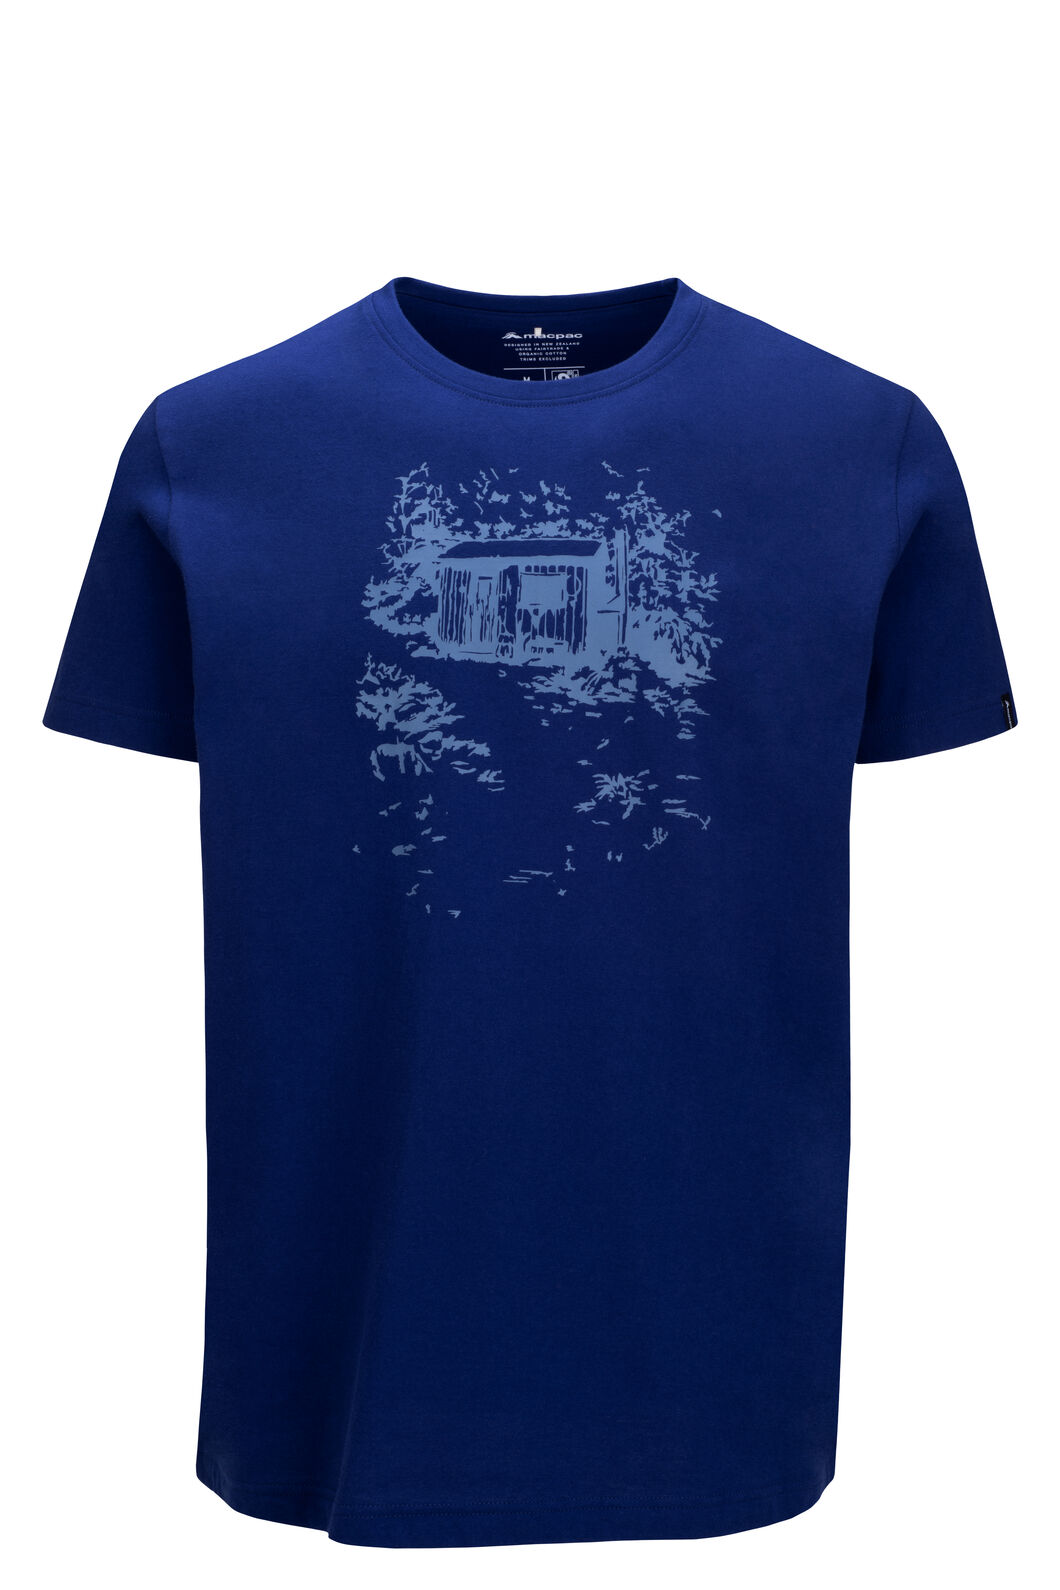 Macpac Hut Fairtrade Organic Cotton Tee — Men's, Blueprint, hi-res